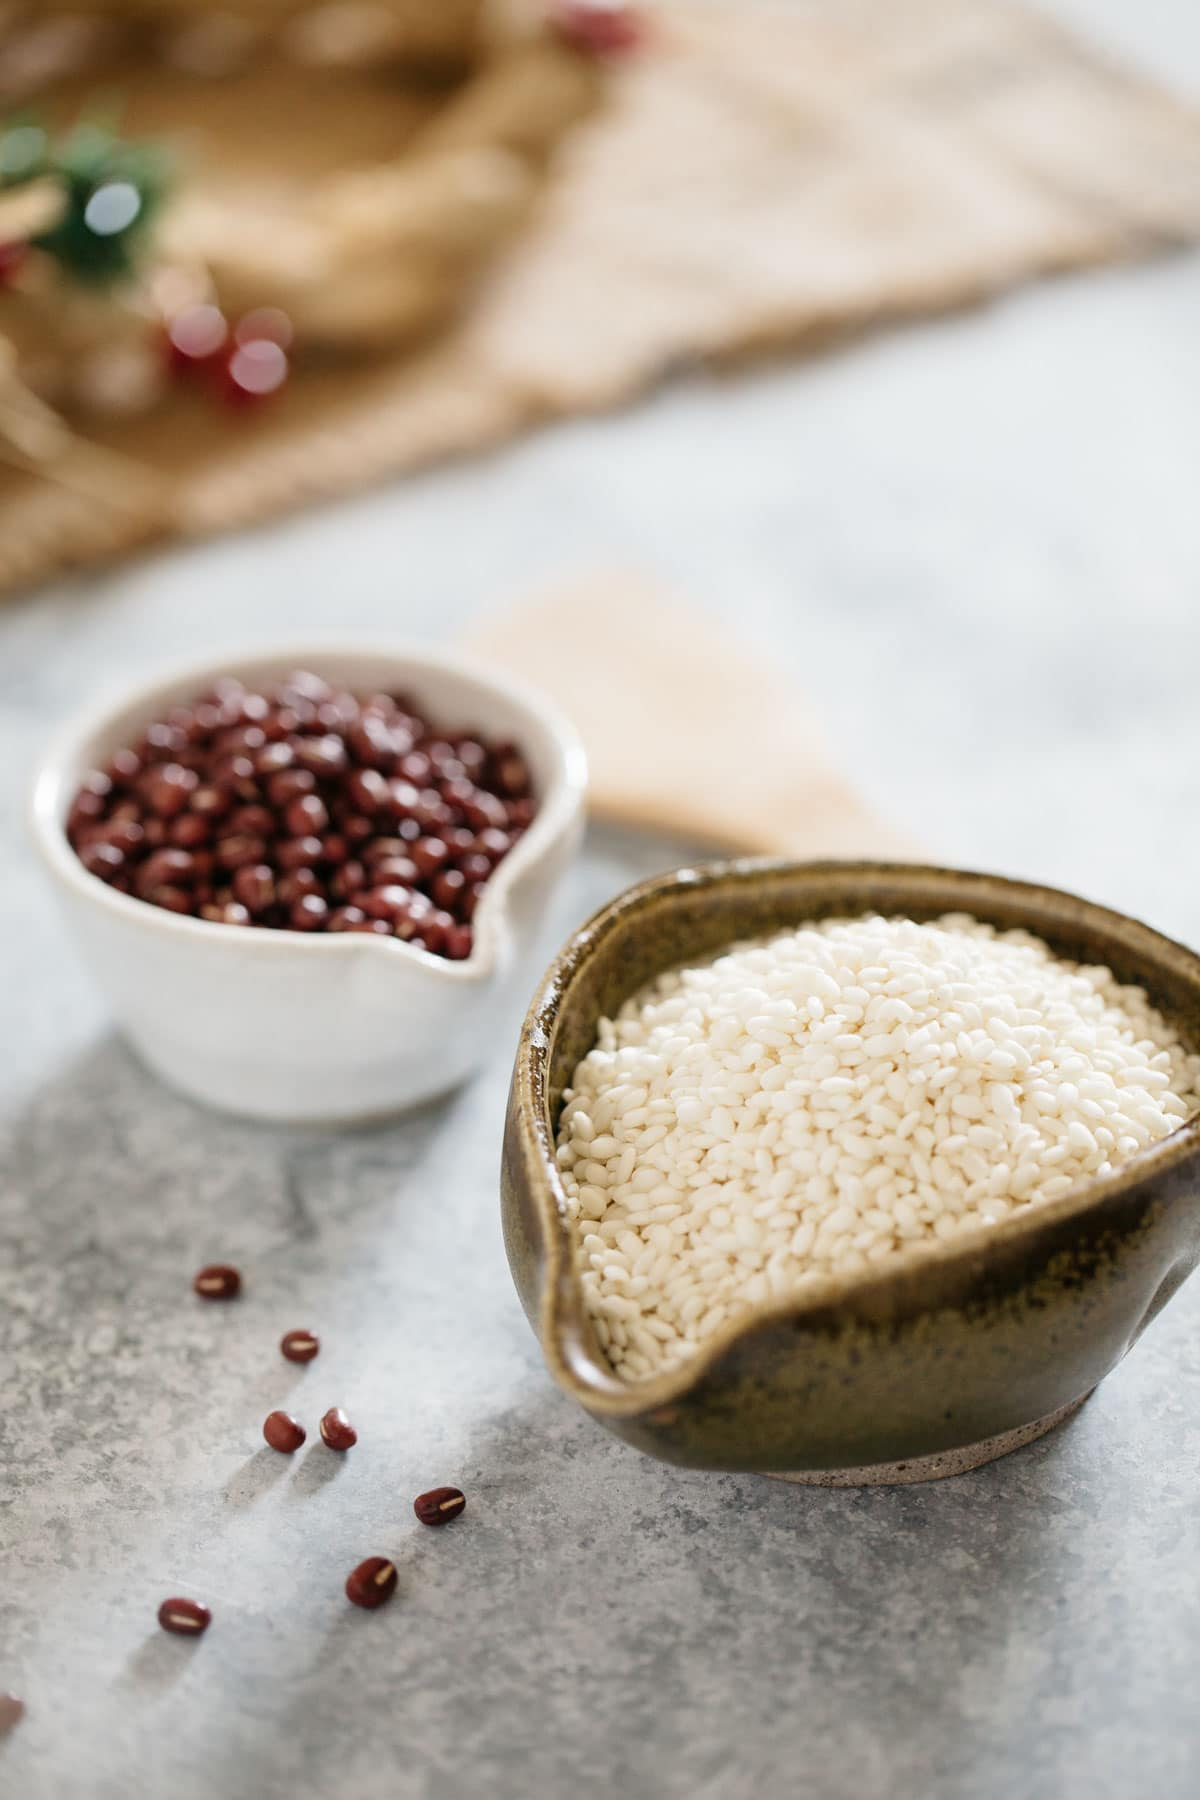 Sekihan ingredients in a two small bowls, azuki beans and glutinous rice